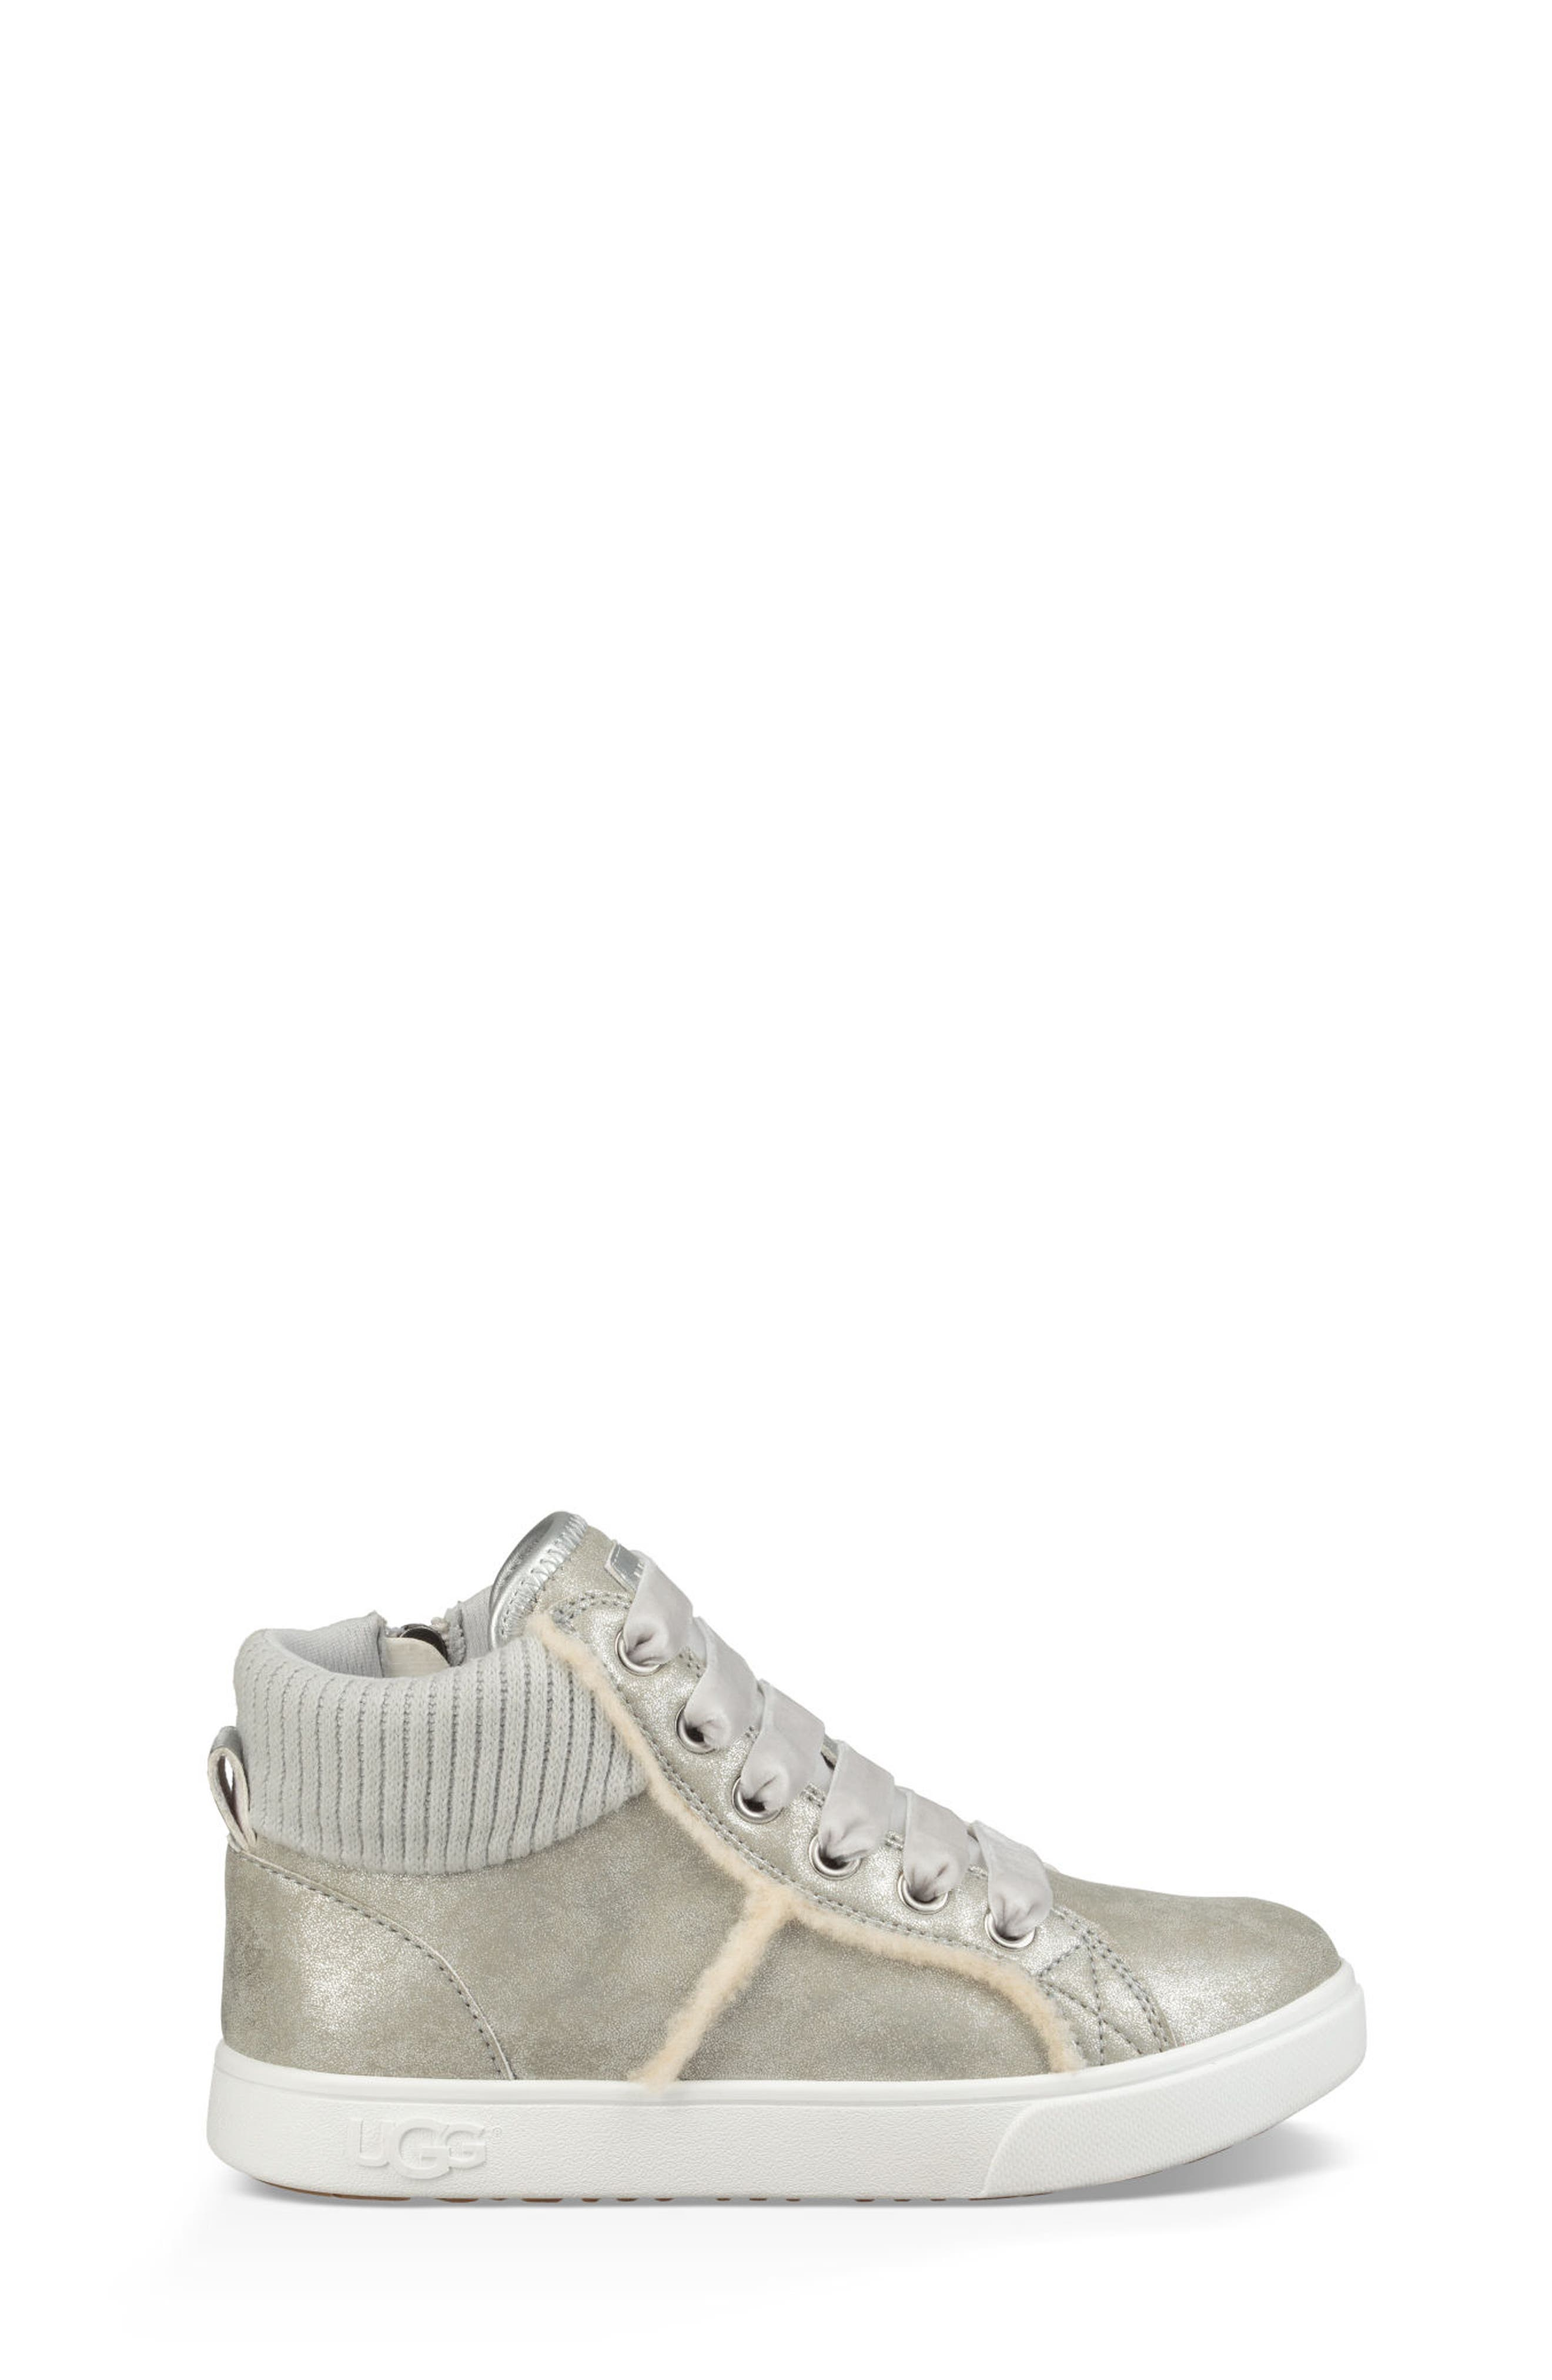 Addie High Top Sneaker,                             Alternate thumbnail 2, color,                             SILVER